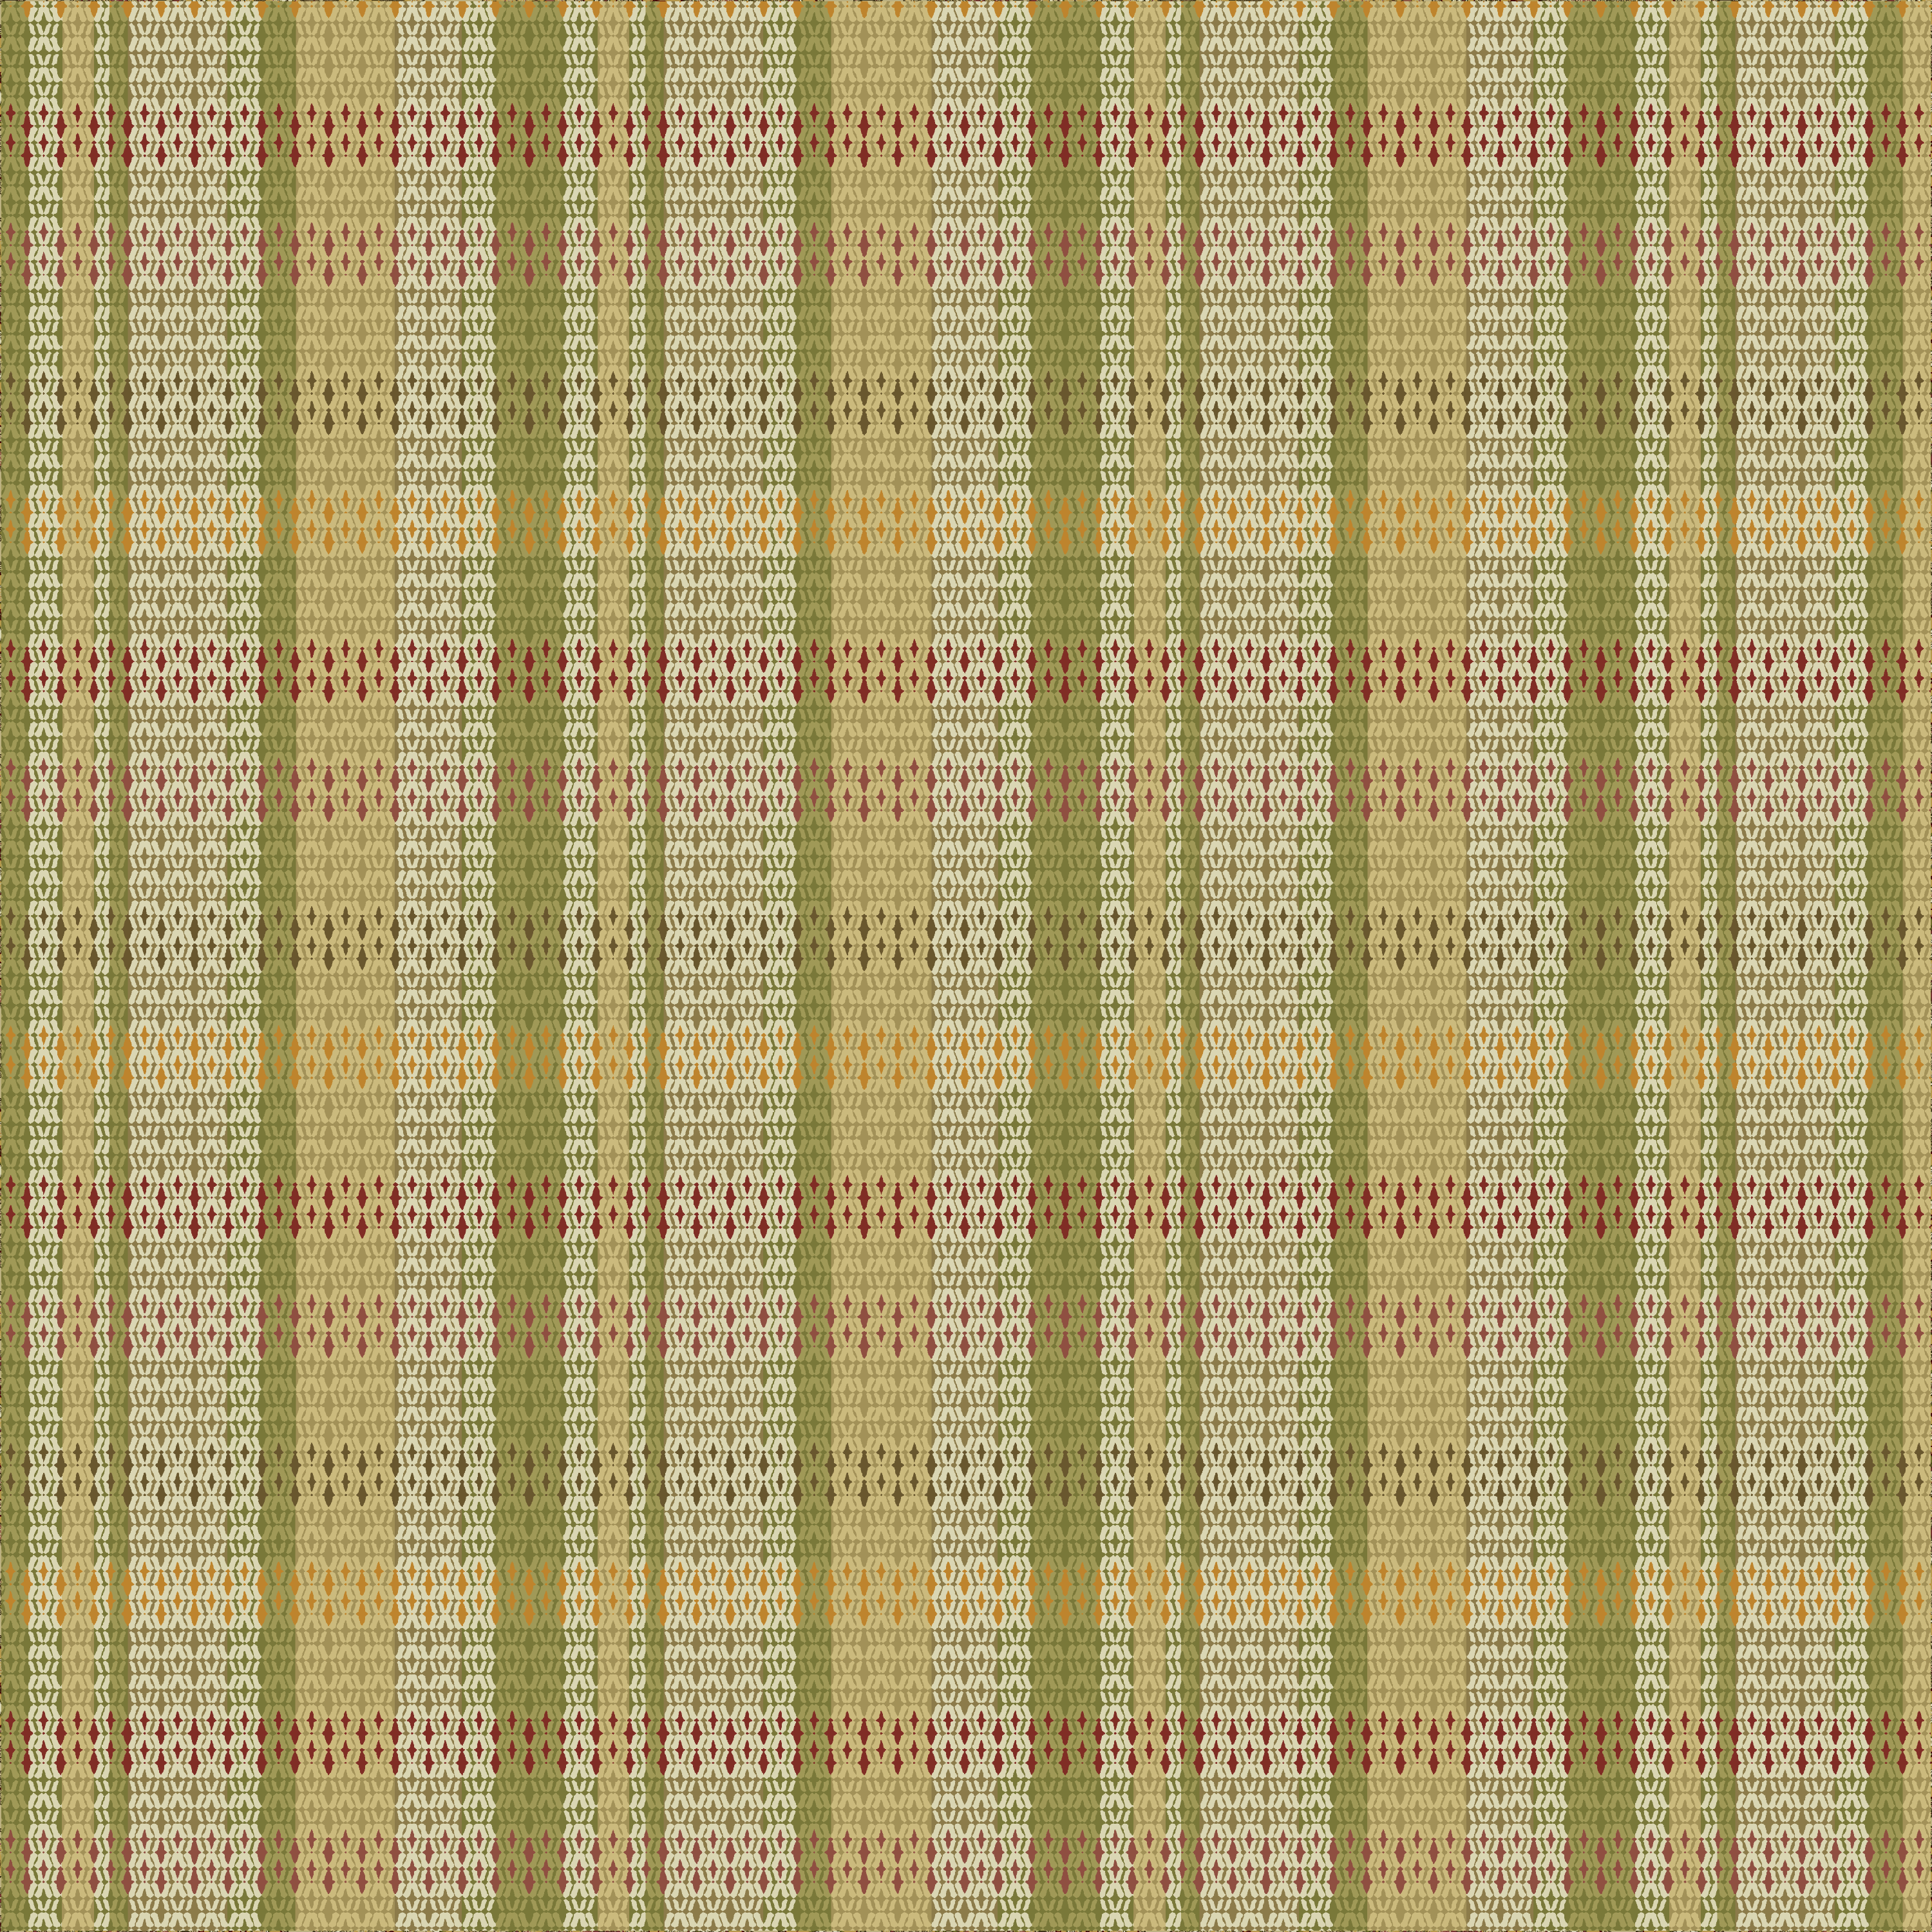 Waverly Inspirations PLAID ANTIQUE 100% Cotton Duck Fabric 45'' Wide, 180 Gsm, Quilt Crafts Cut By The Yard